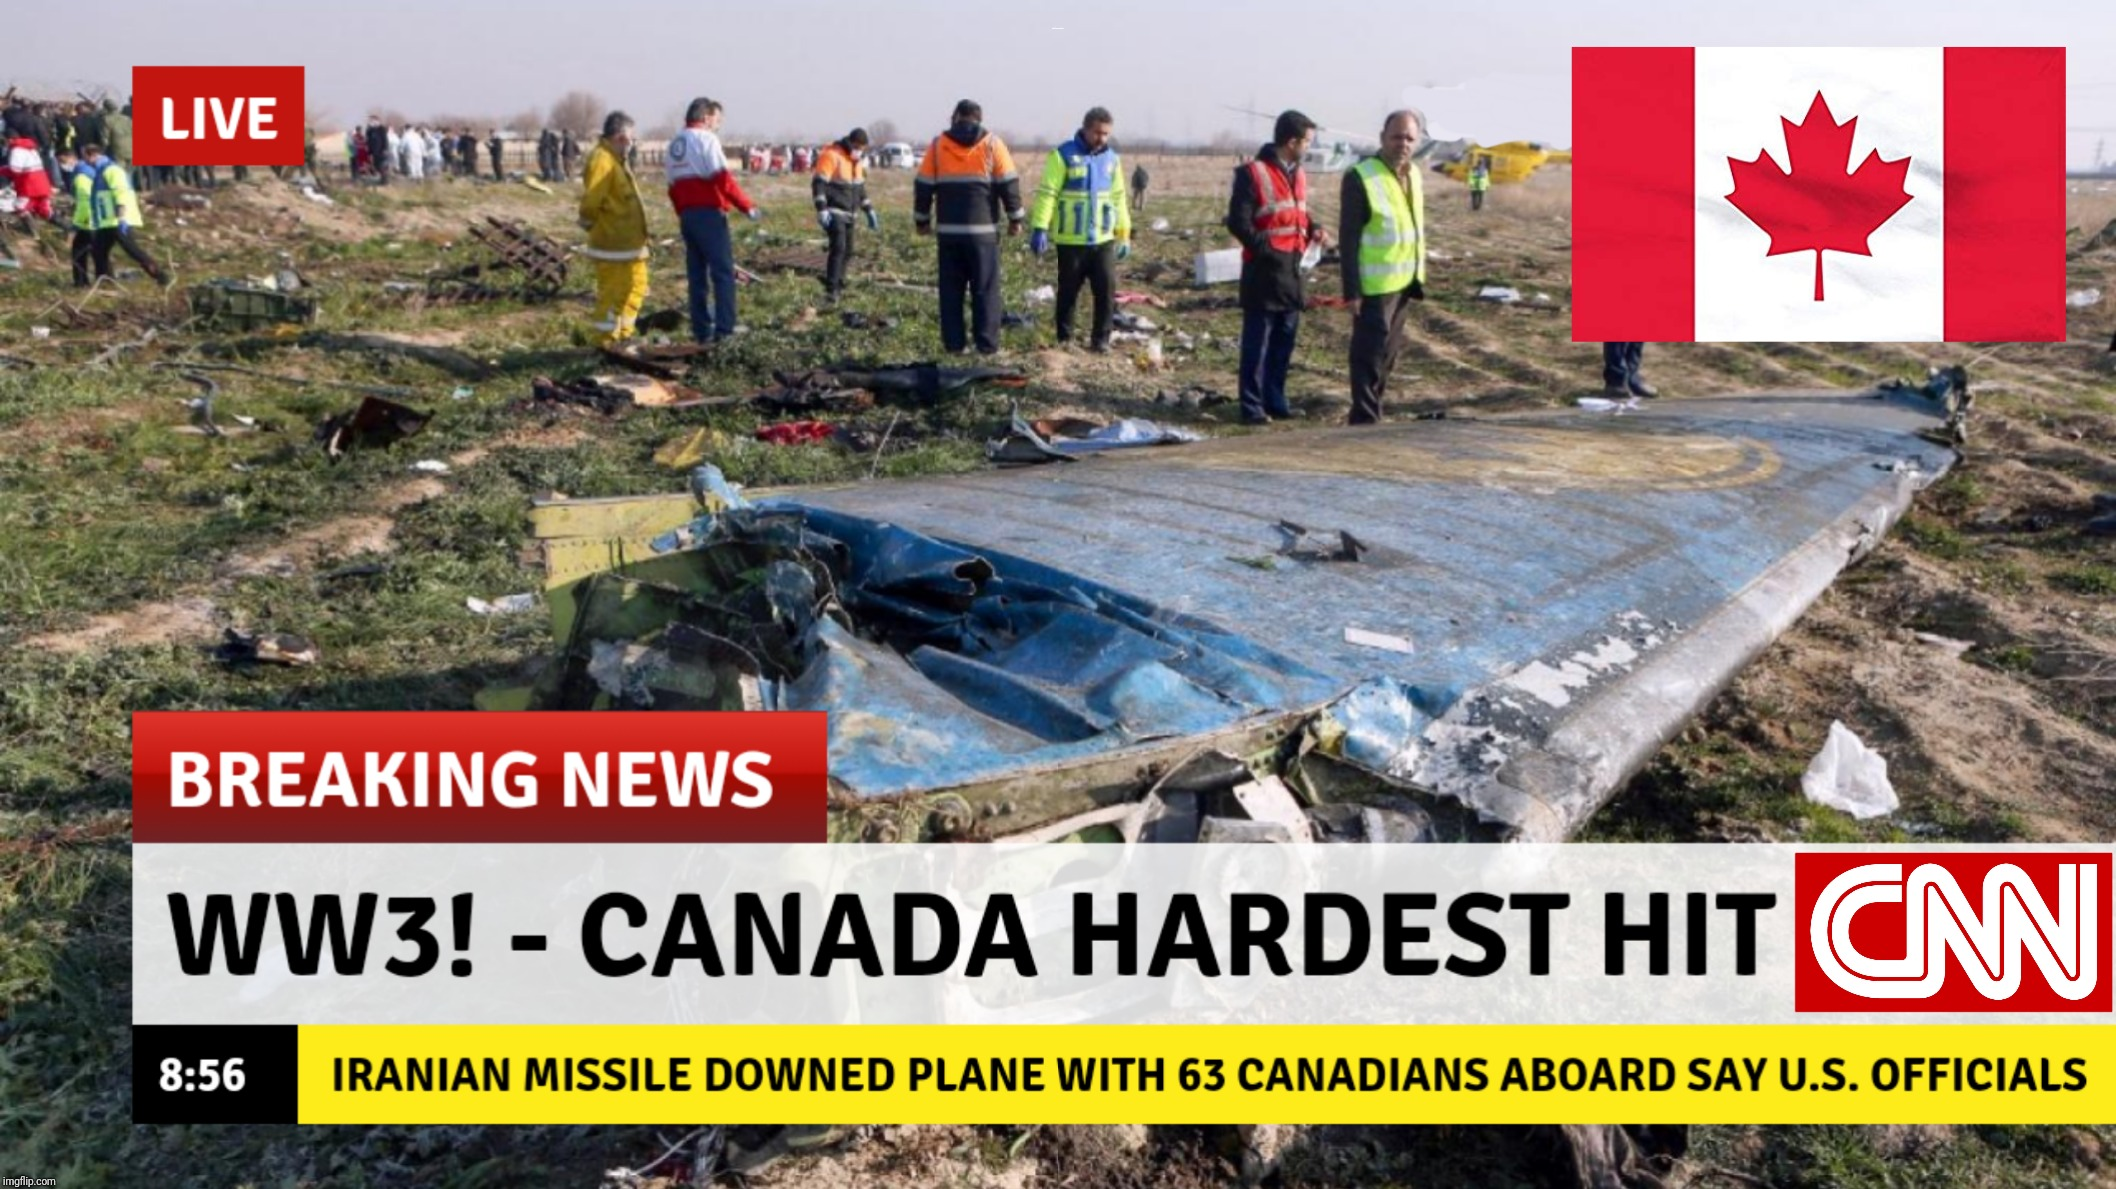 We joke, but it is sad really. Rest in peace. | WW3! - CANADA HARDEST HIT | image tagged in canada,rip,rest in peace,iran,ww3,meanwhile on imgflip | made w/ Imgflip meme maker